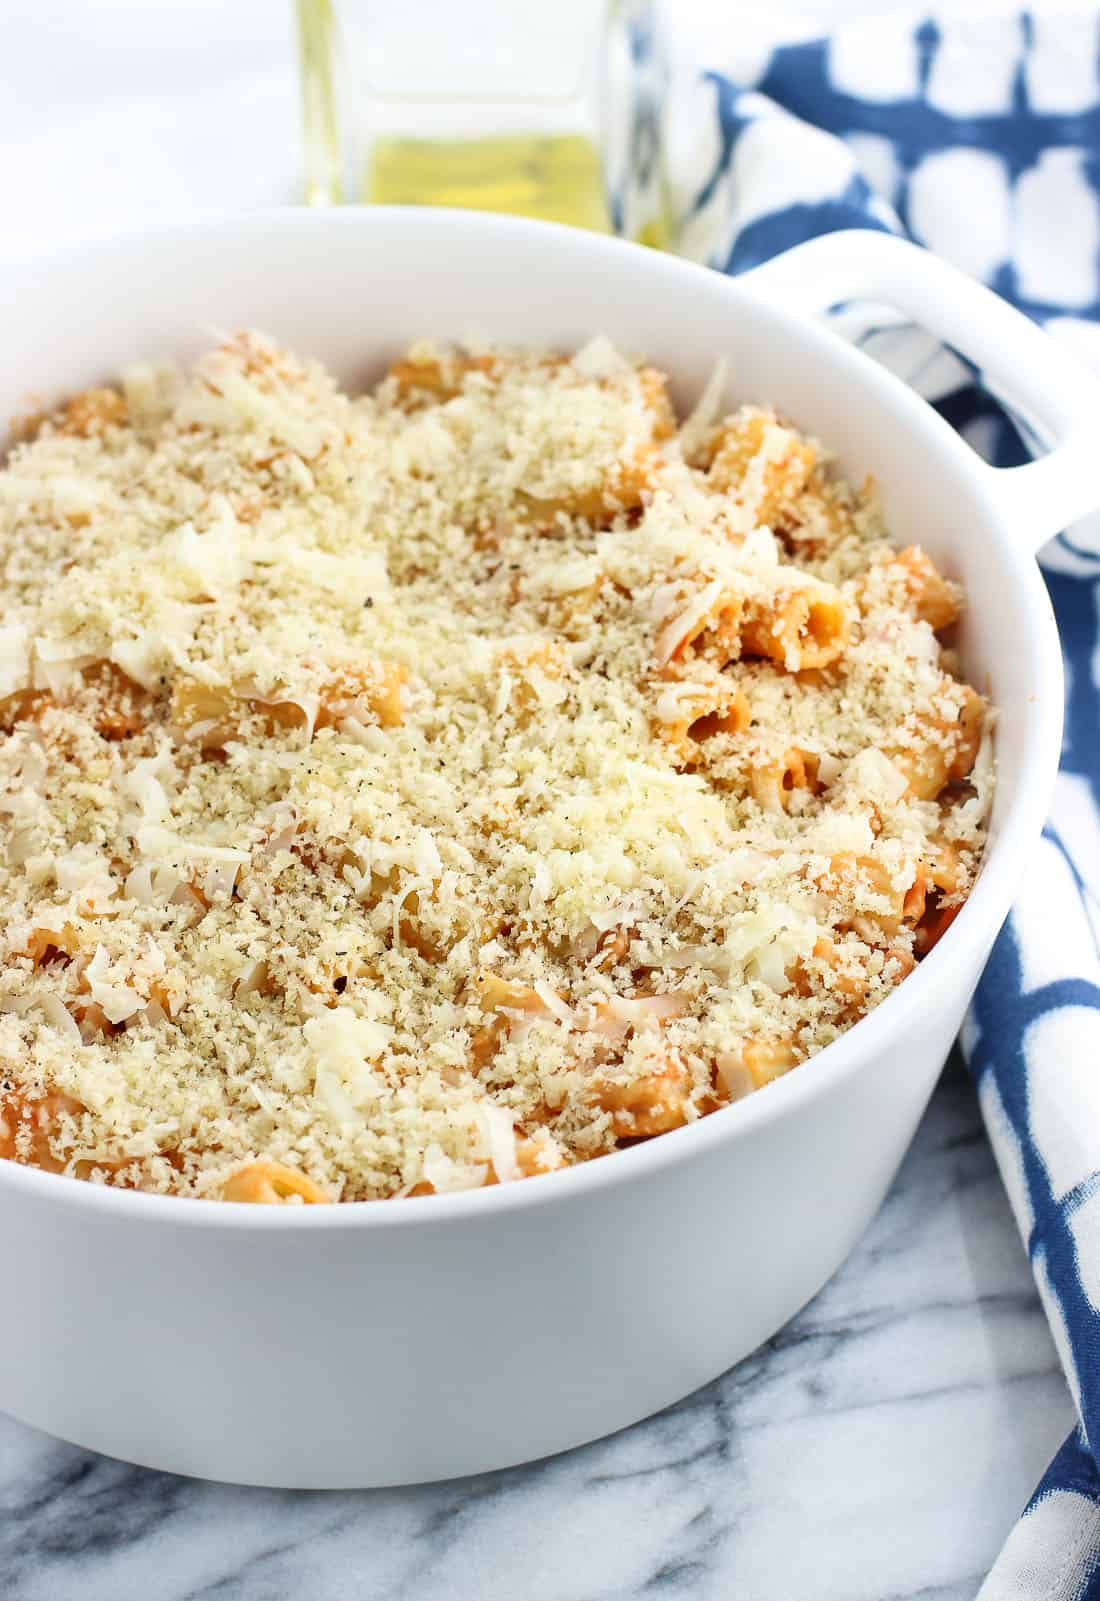 This vodka sauce pasta bake is the ultimate in comfort food. Easy homemade vodka sauce is mixed with ziti, bacon, and cheese and topped with a crispy panko topping in this crowd-favorite main dish.